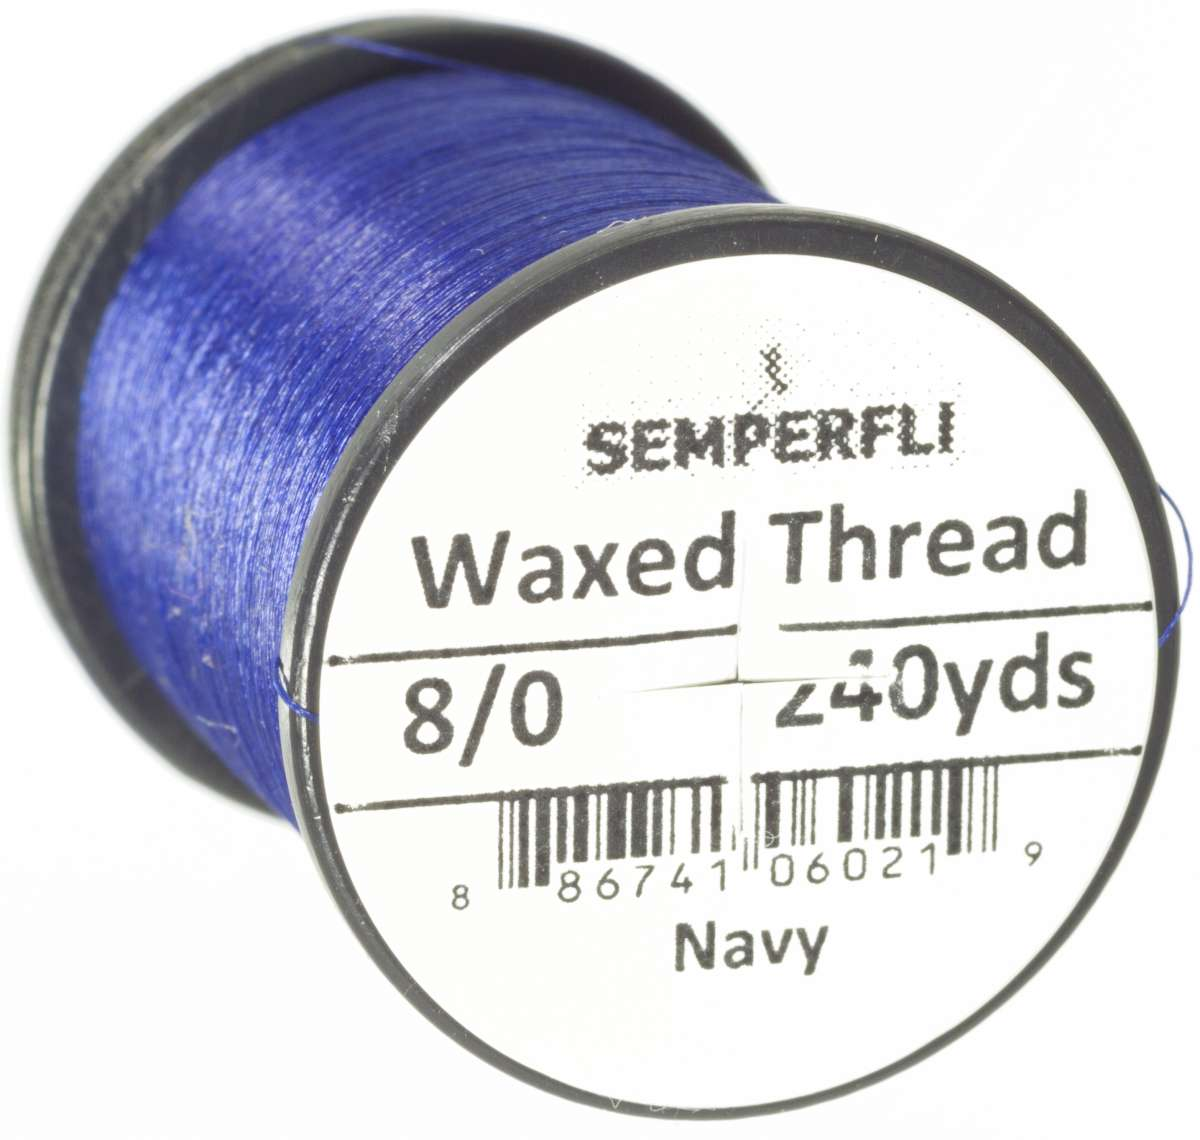 8/0 Classic Waxed Thread Navy Sem-0400-1768